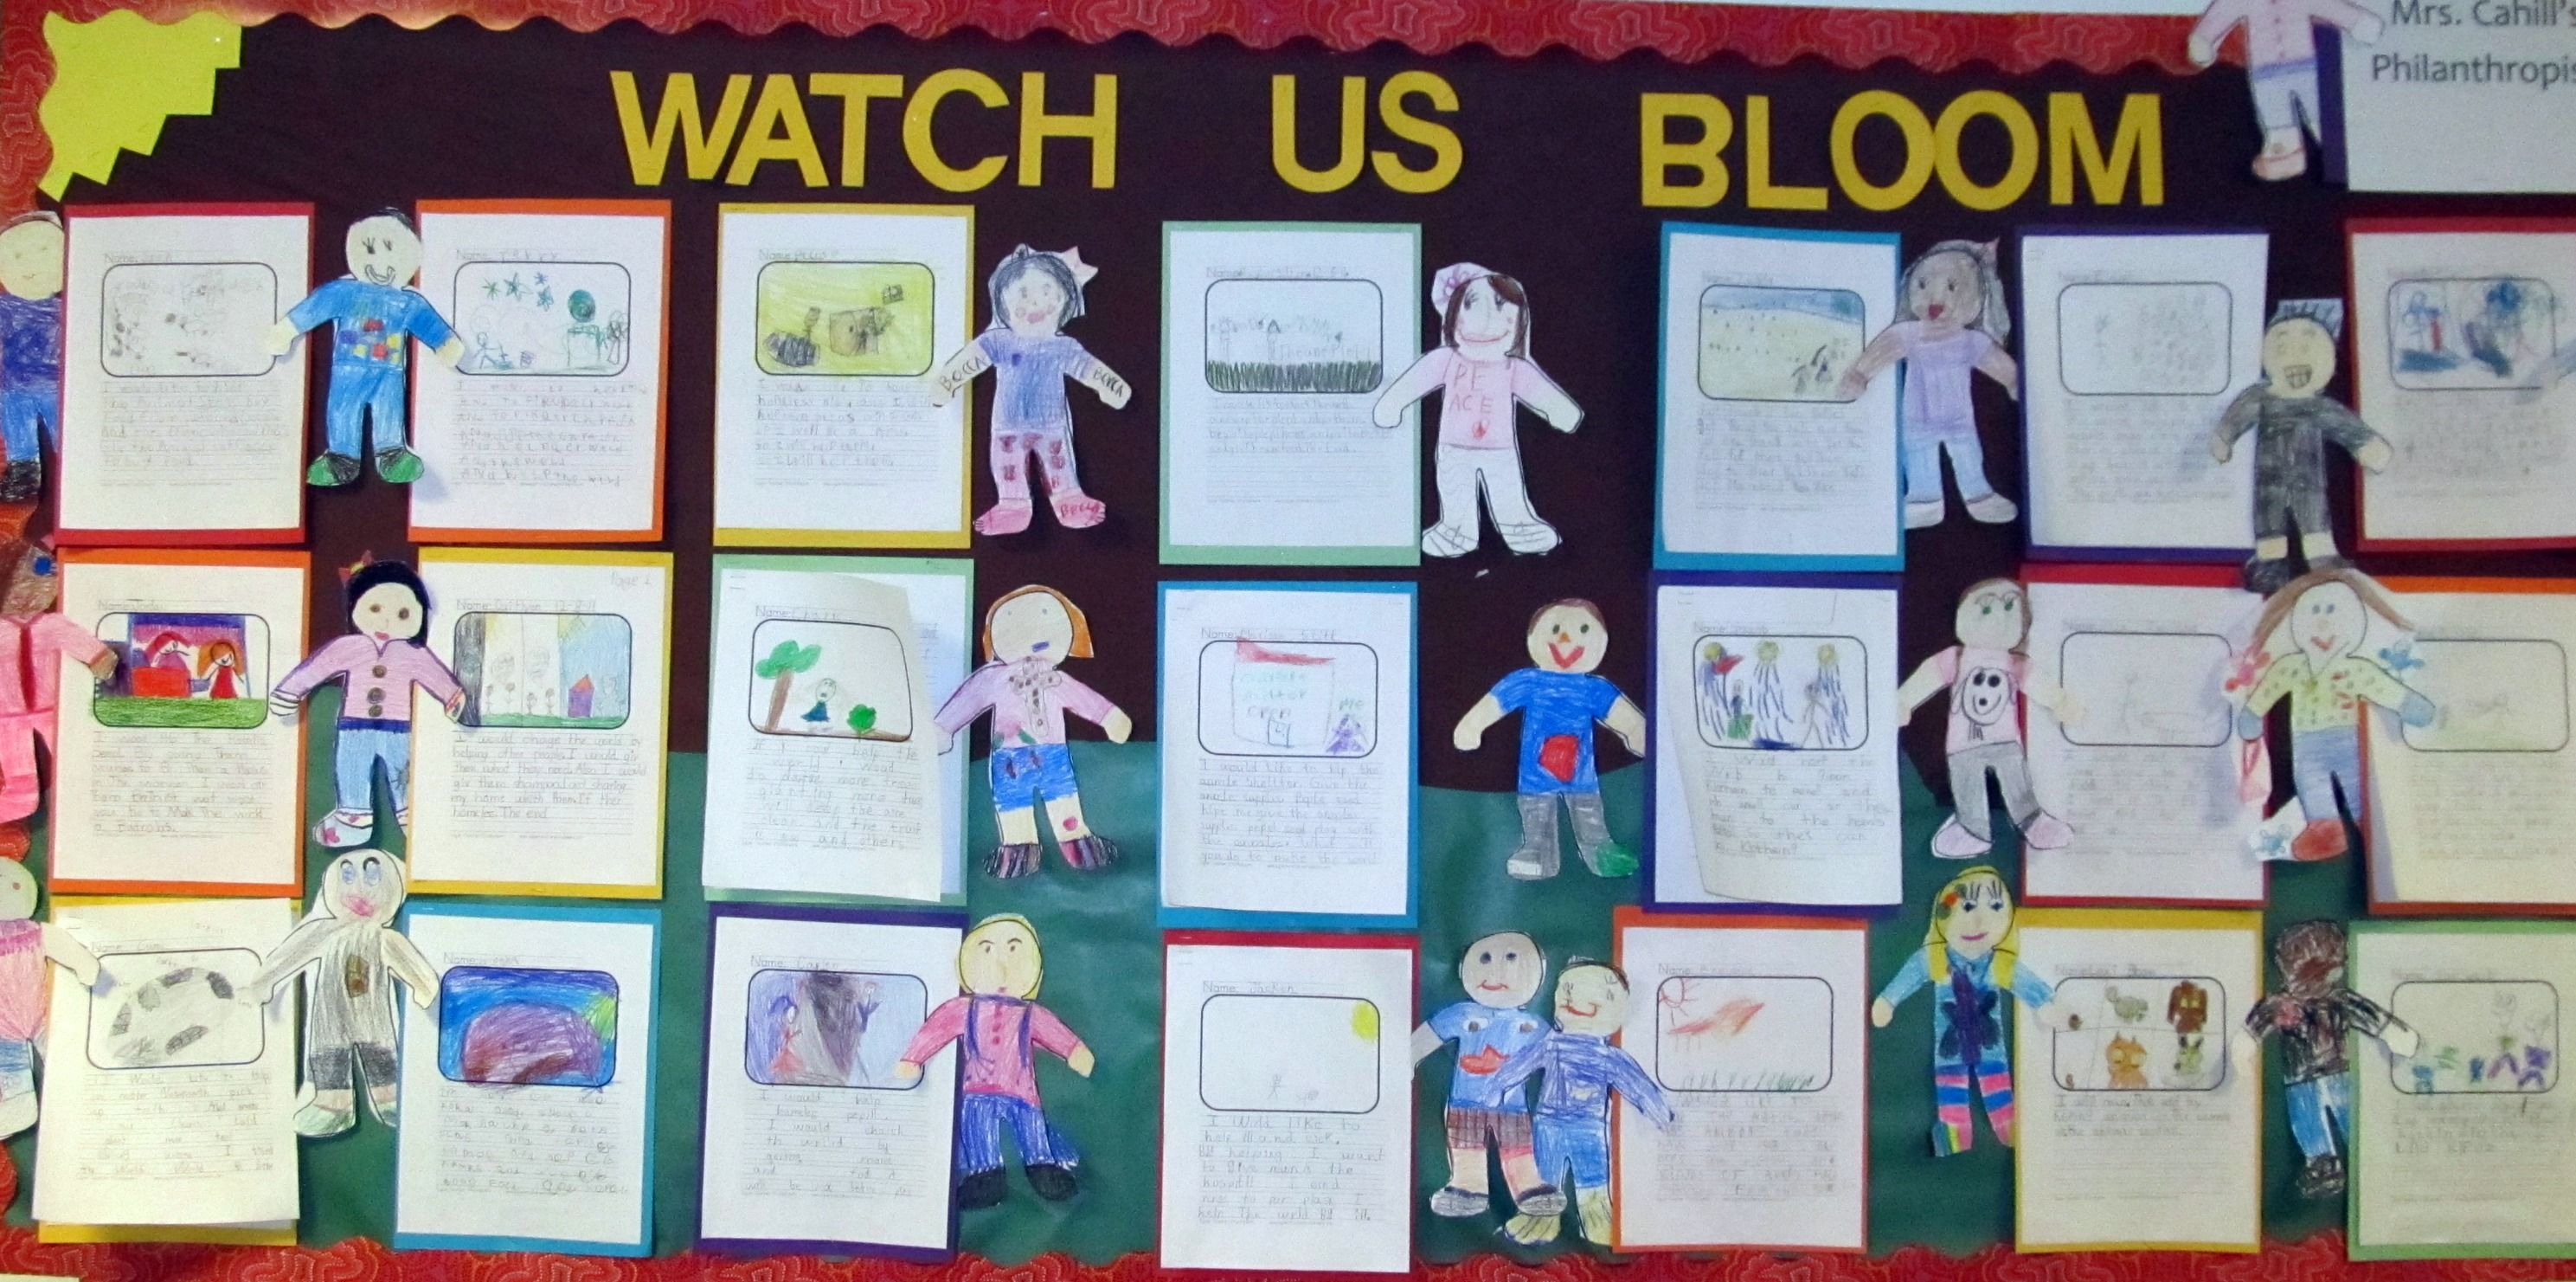 "I have a bulletin board in the hallway that I have covered with brown fabric and posted the generic title ""watch us bloom"" to keep up all year. I also have the students make a little person that I post by their ever changing works all year long."